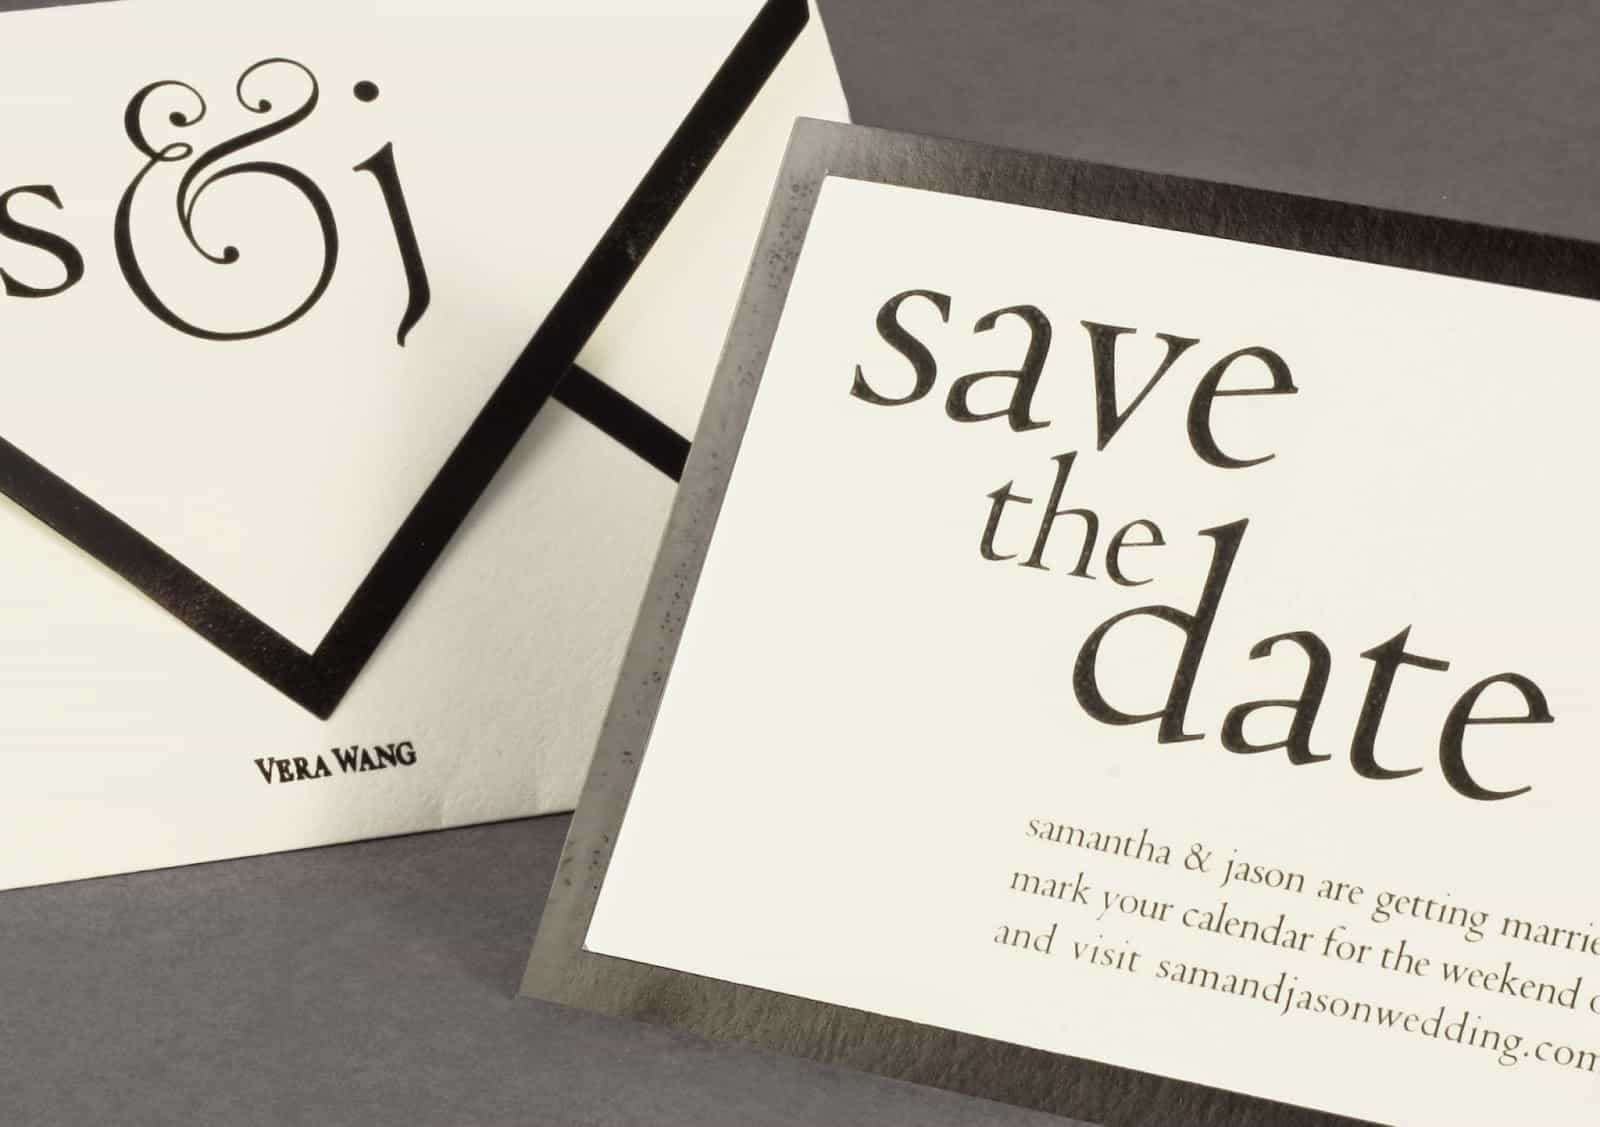 Vera Wang on Weddings Volume Two Save the date black and white